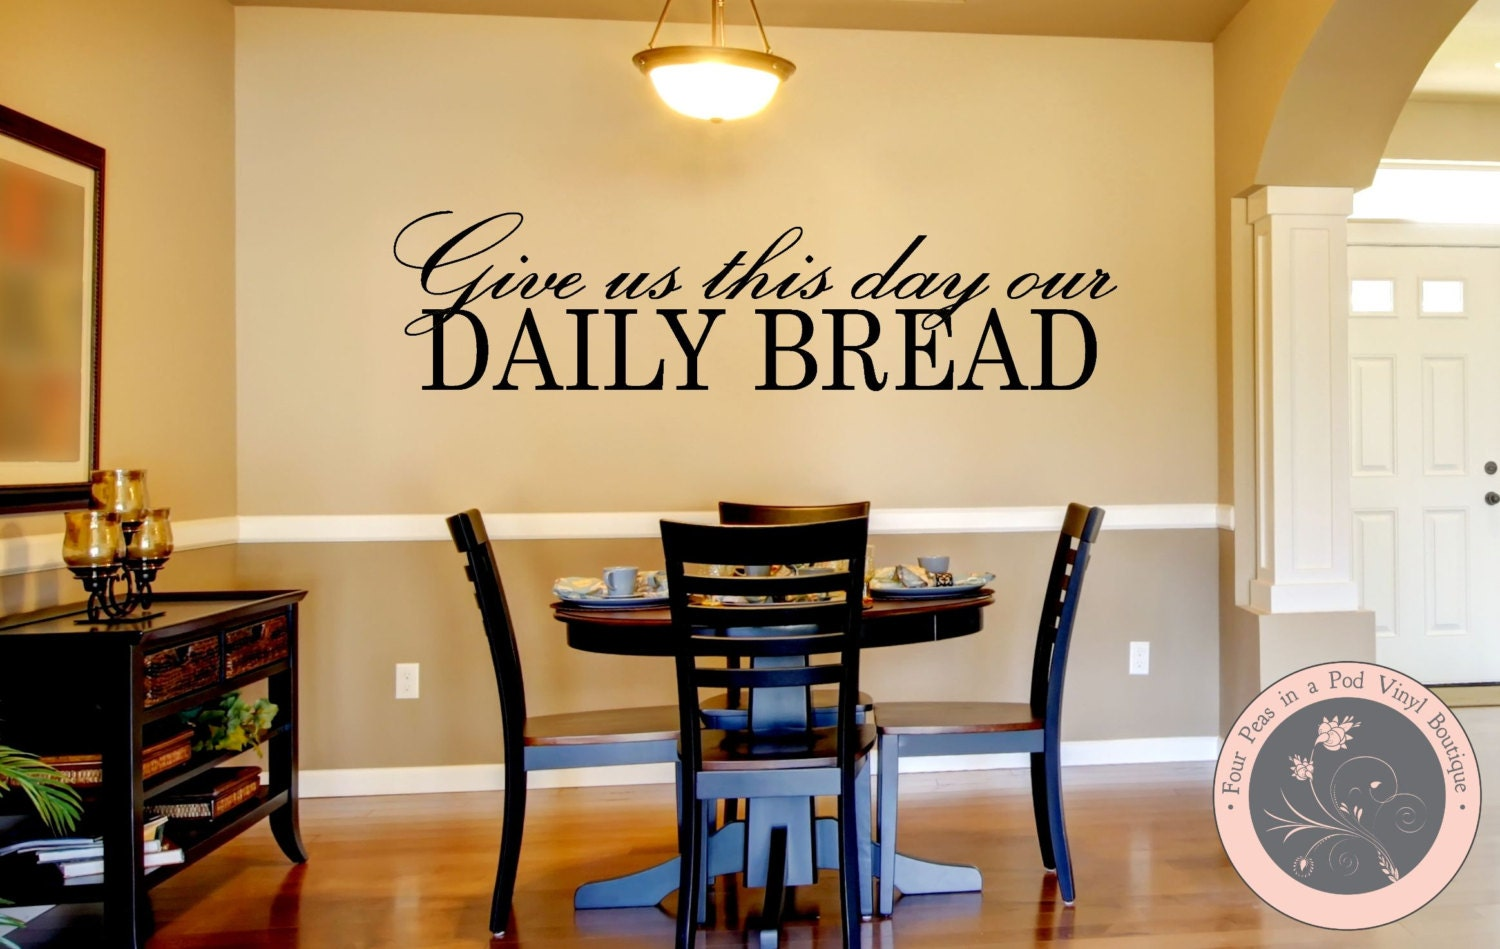 Kitchen decor kitchen wall decal christian wall decal zoom amipublicfo Choice Image